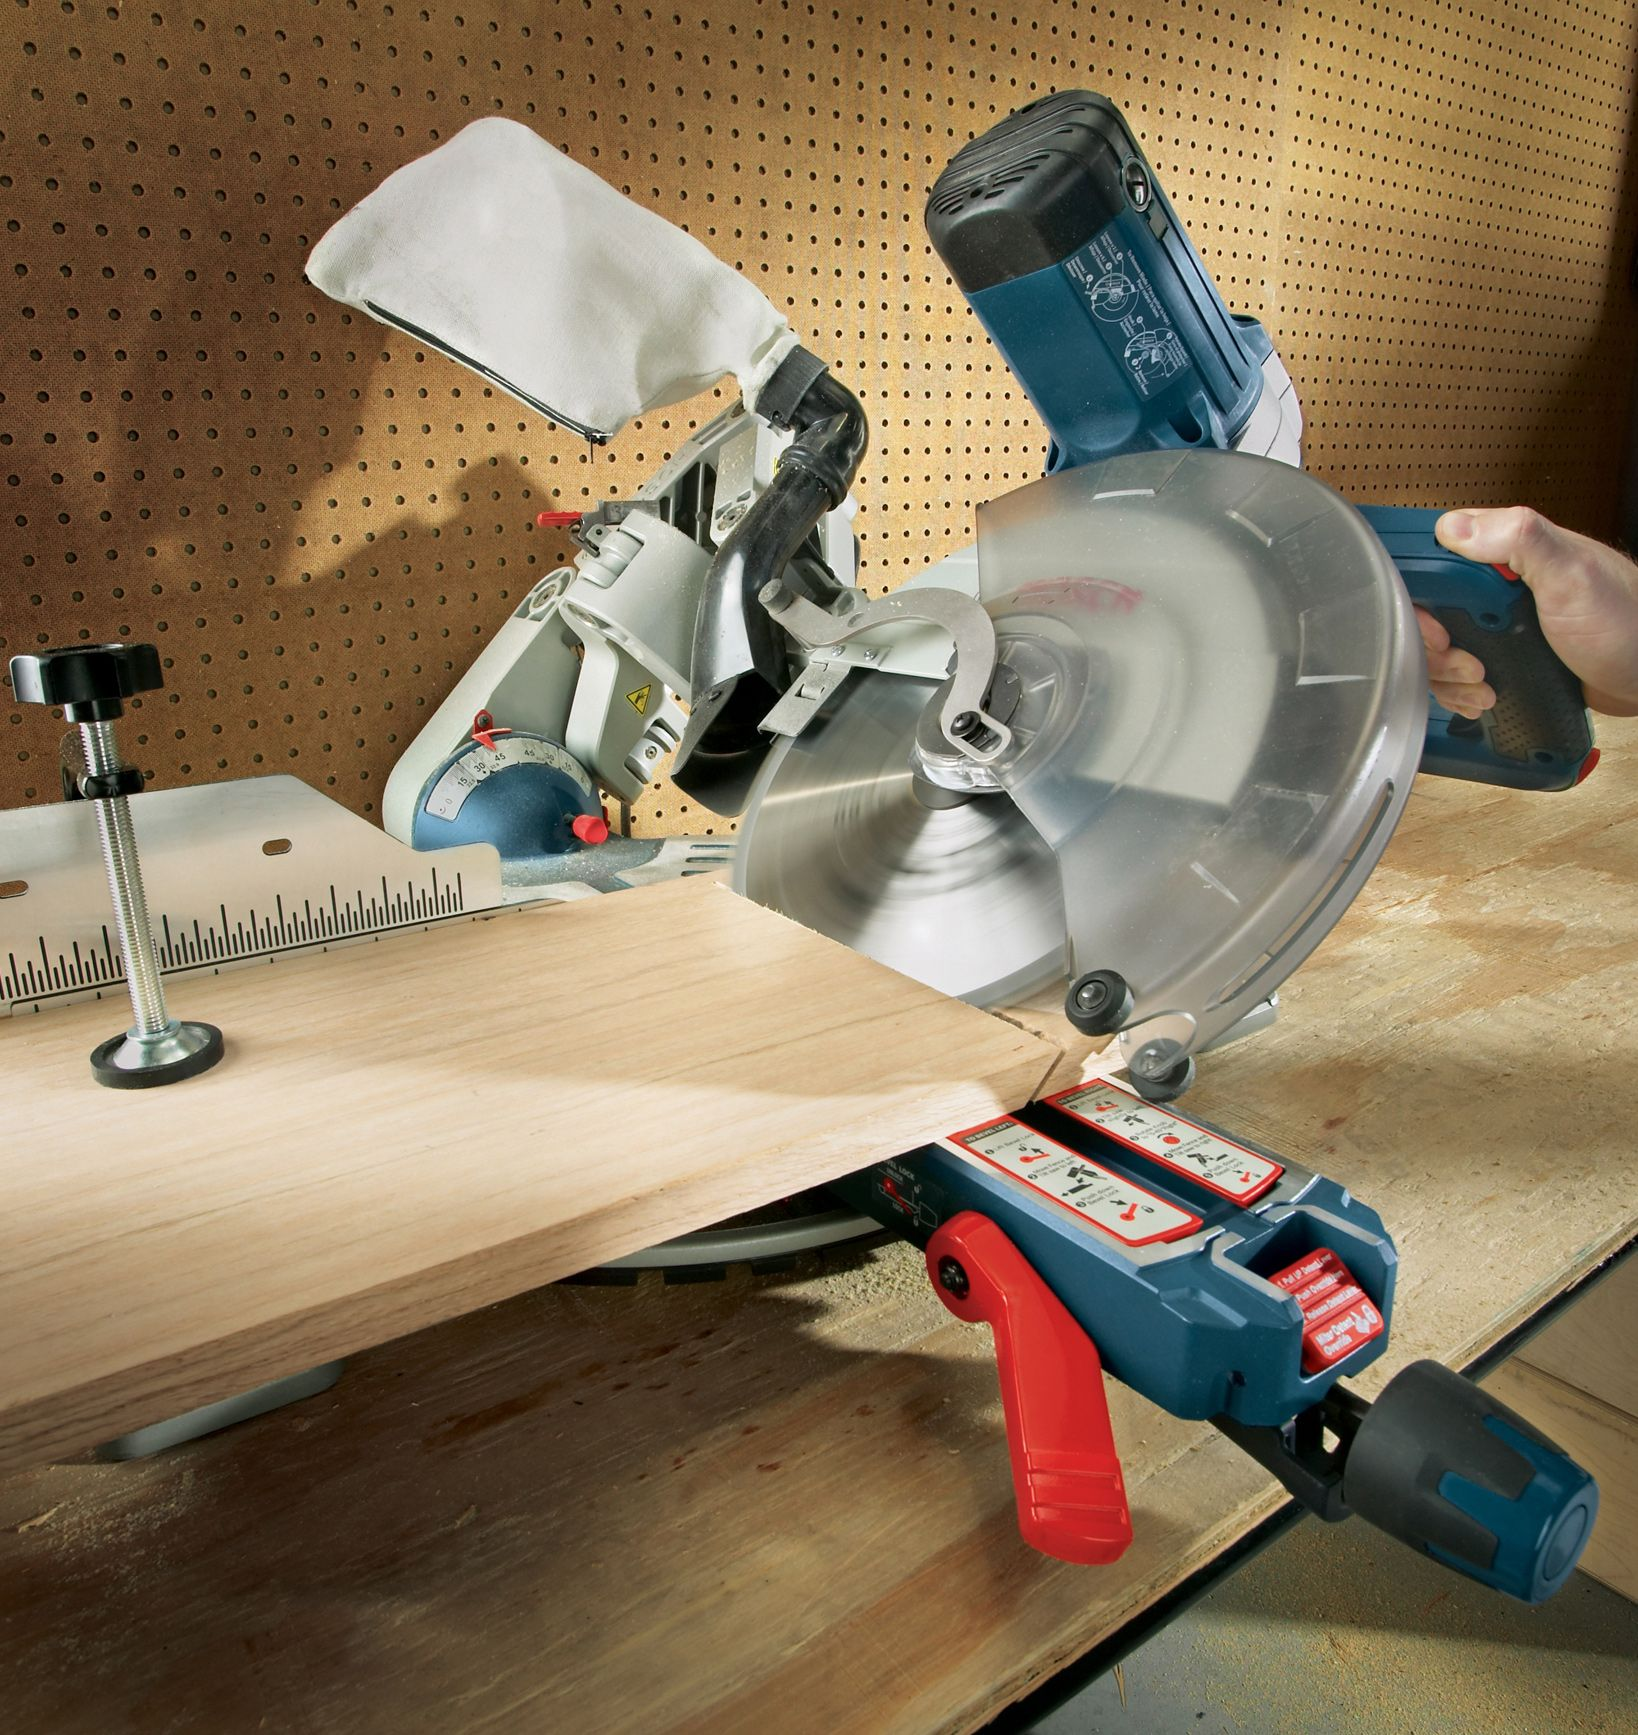 Featuring An Axial Glide System Consistent Precision Over The Tool Life And Compact Workspace That Saves Up To 12 This Saw Is Miter Saw Miter Saws Mitered